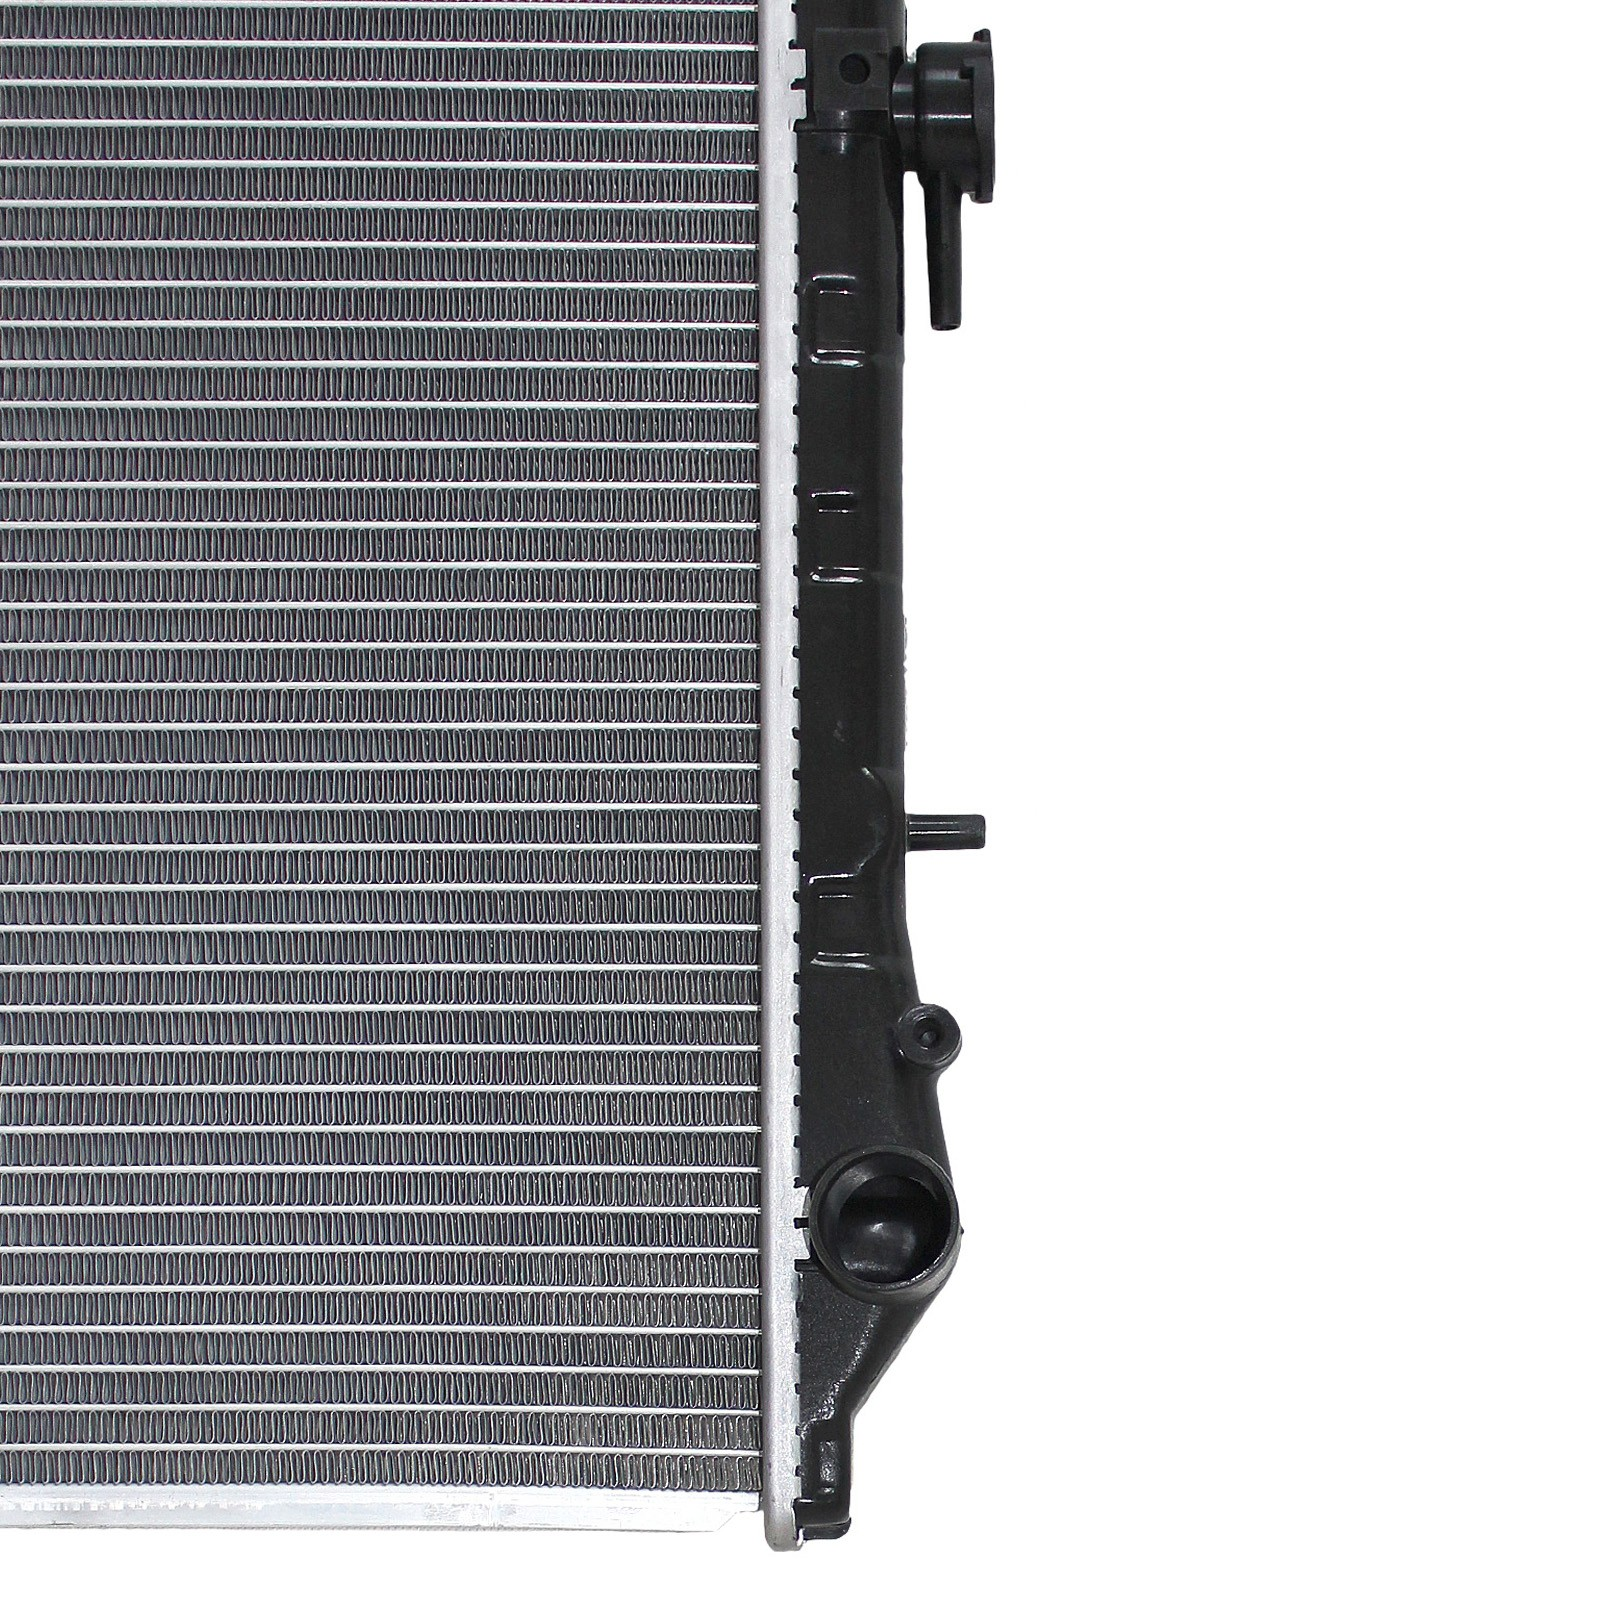 Dromedary-Mercedes Radiator Manufacture | New Radiator For 90-96 Nissan 300zx 30l-2